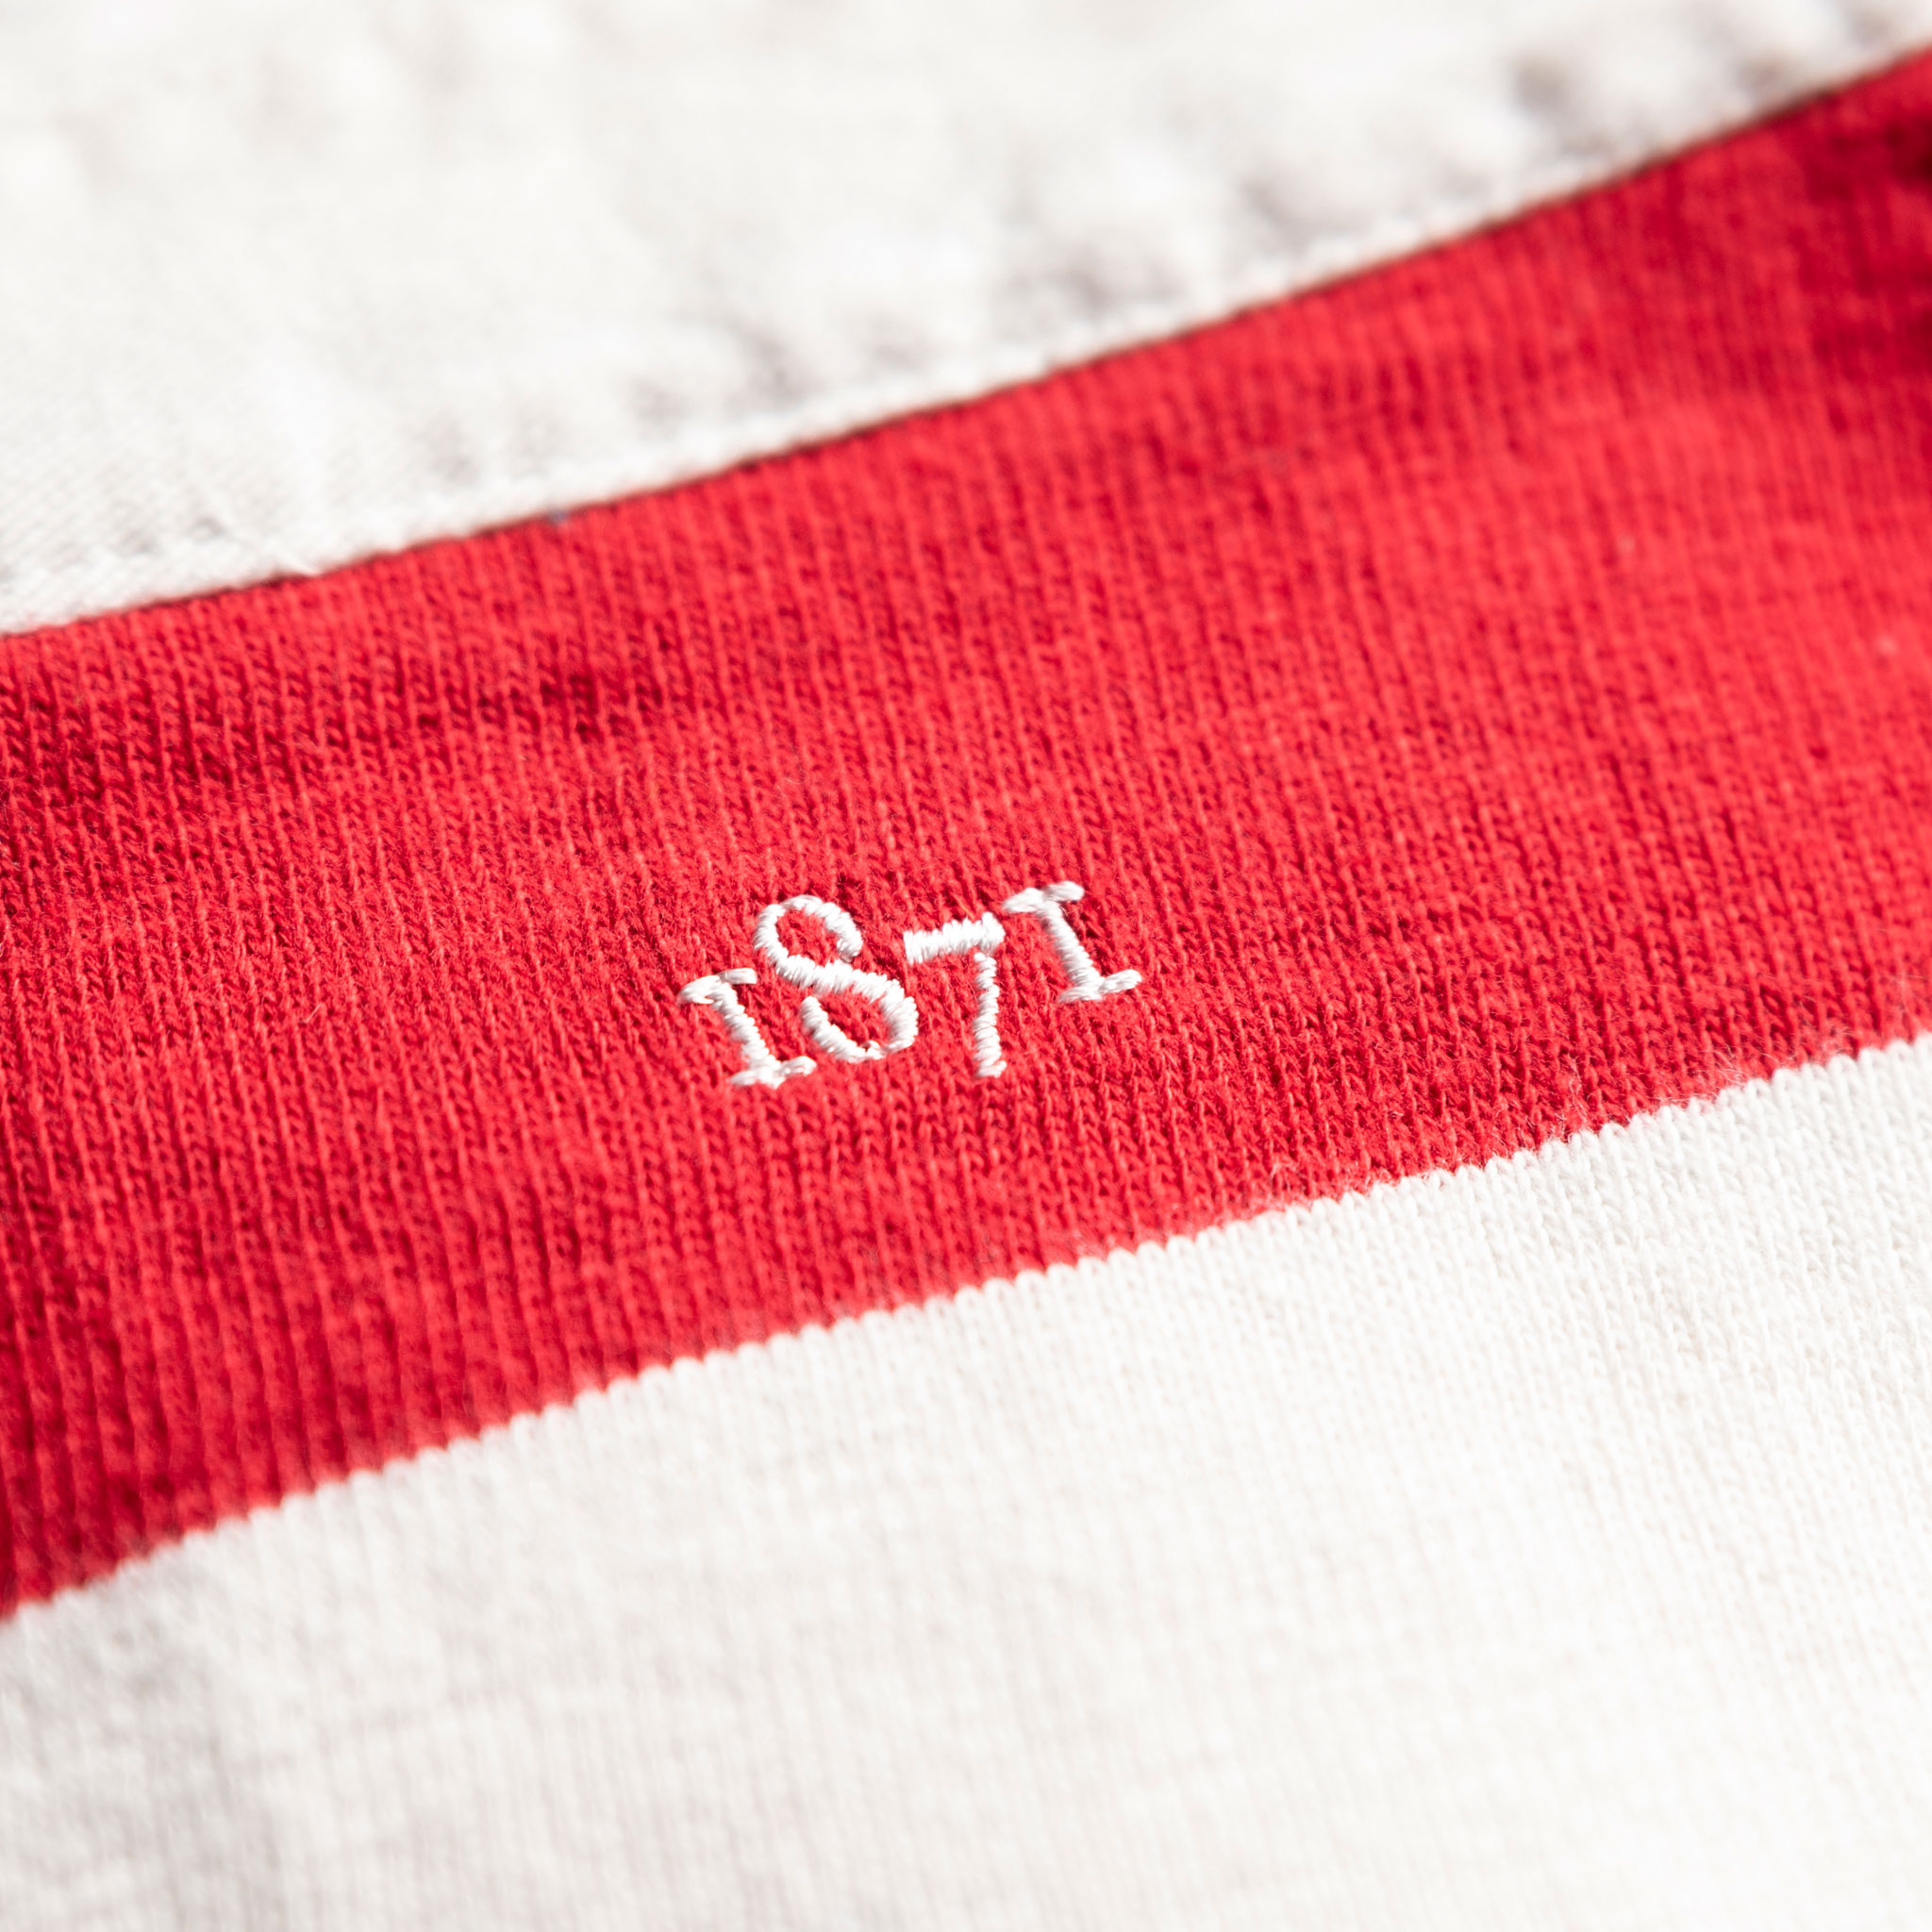 England 1871 Sky Red and White Vintage Rugby Shirt_1871